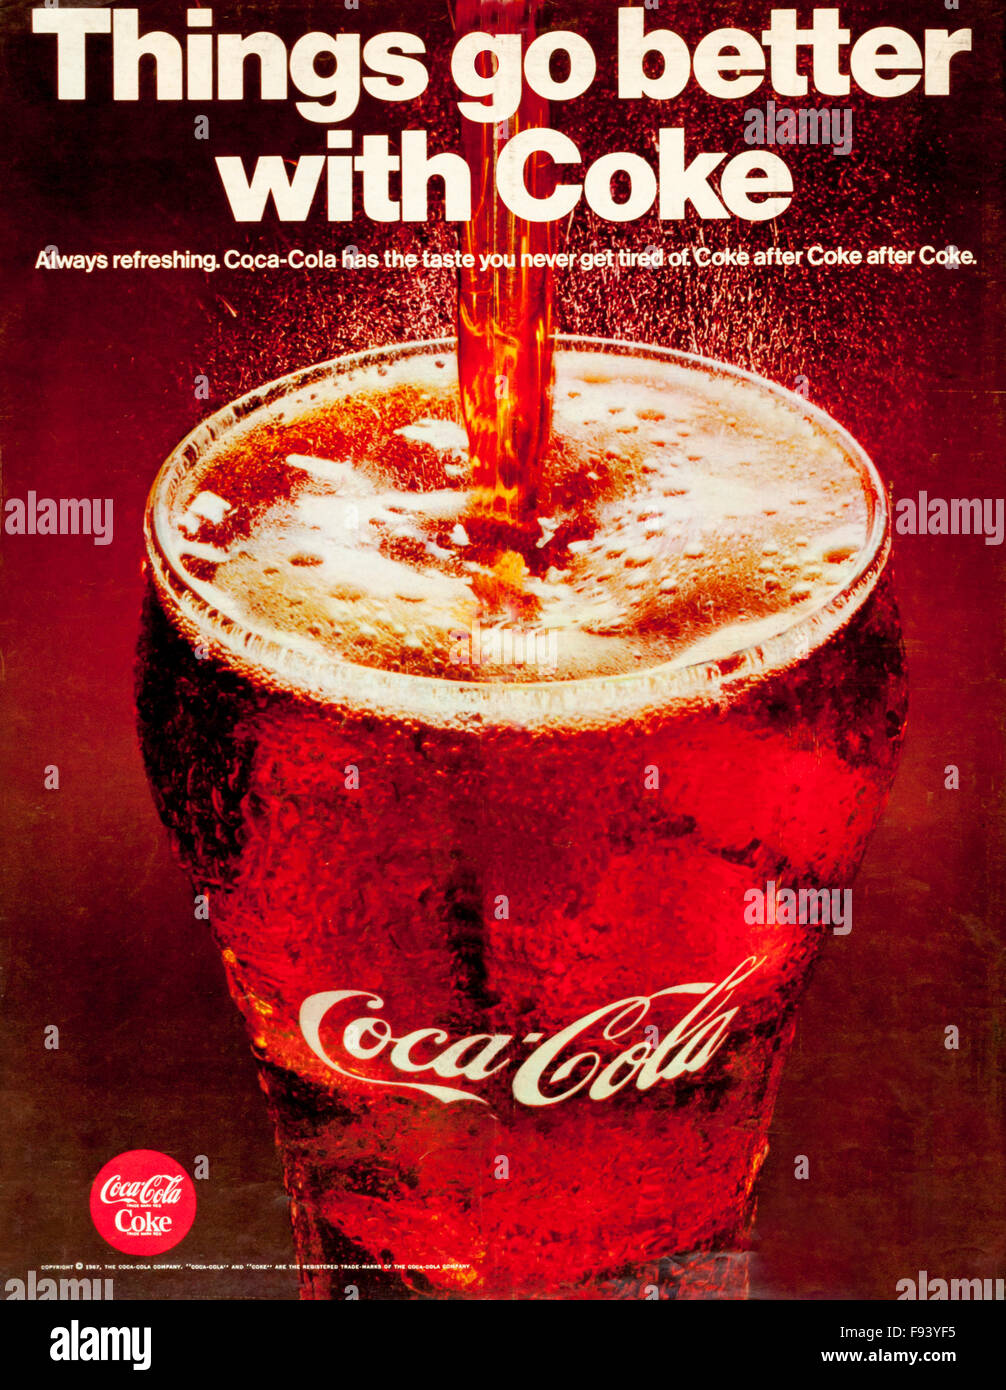 1960s magazine advertisement advertising Coca-Cola. Things go better with coke. Stock Photo